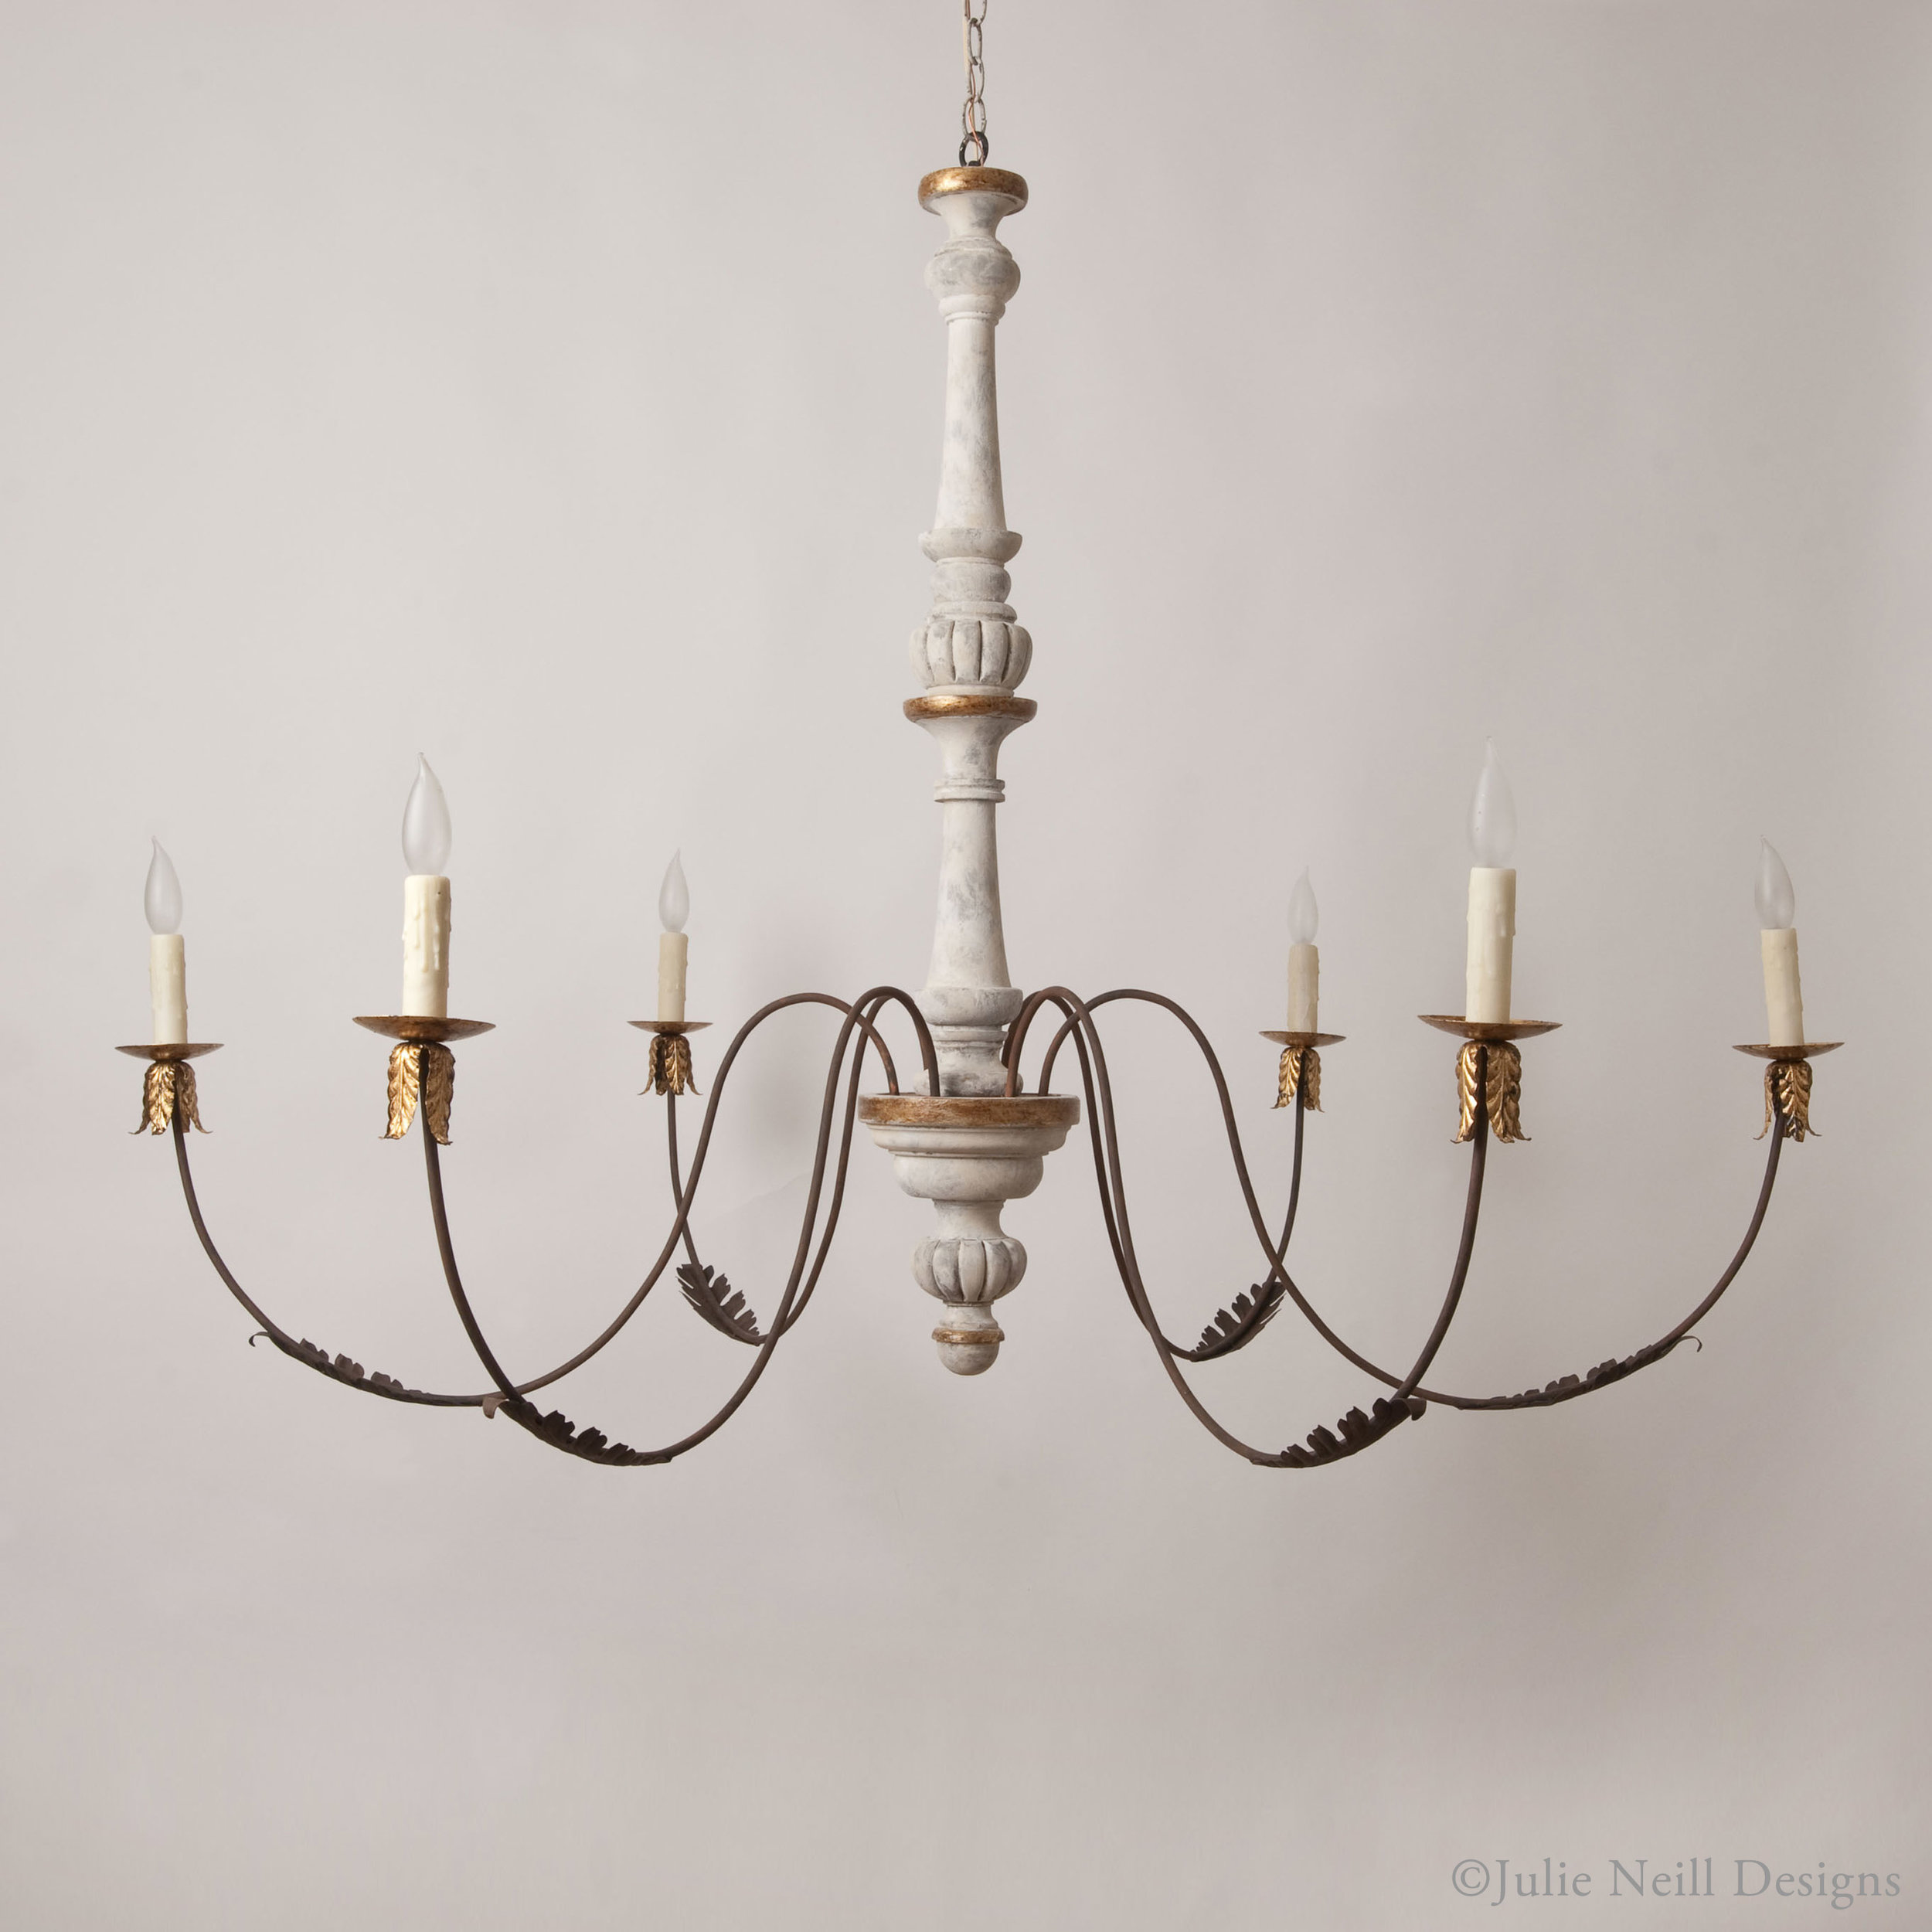 BonBon_Chandelier_JulieNeillDesigns